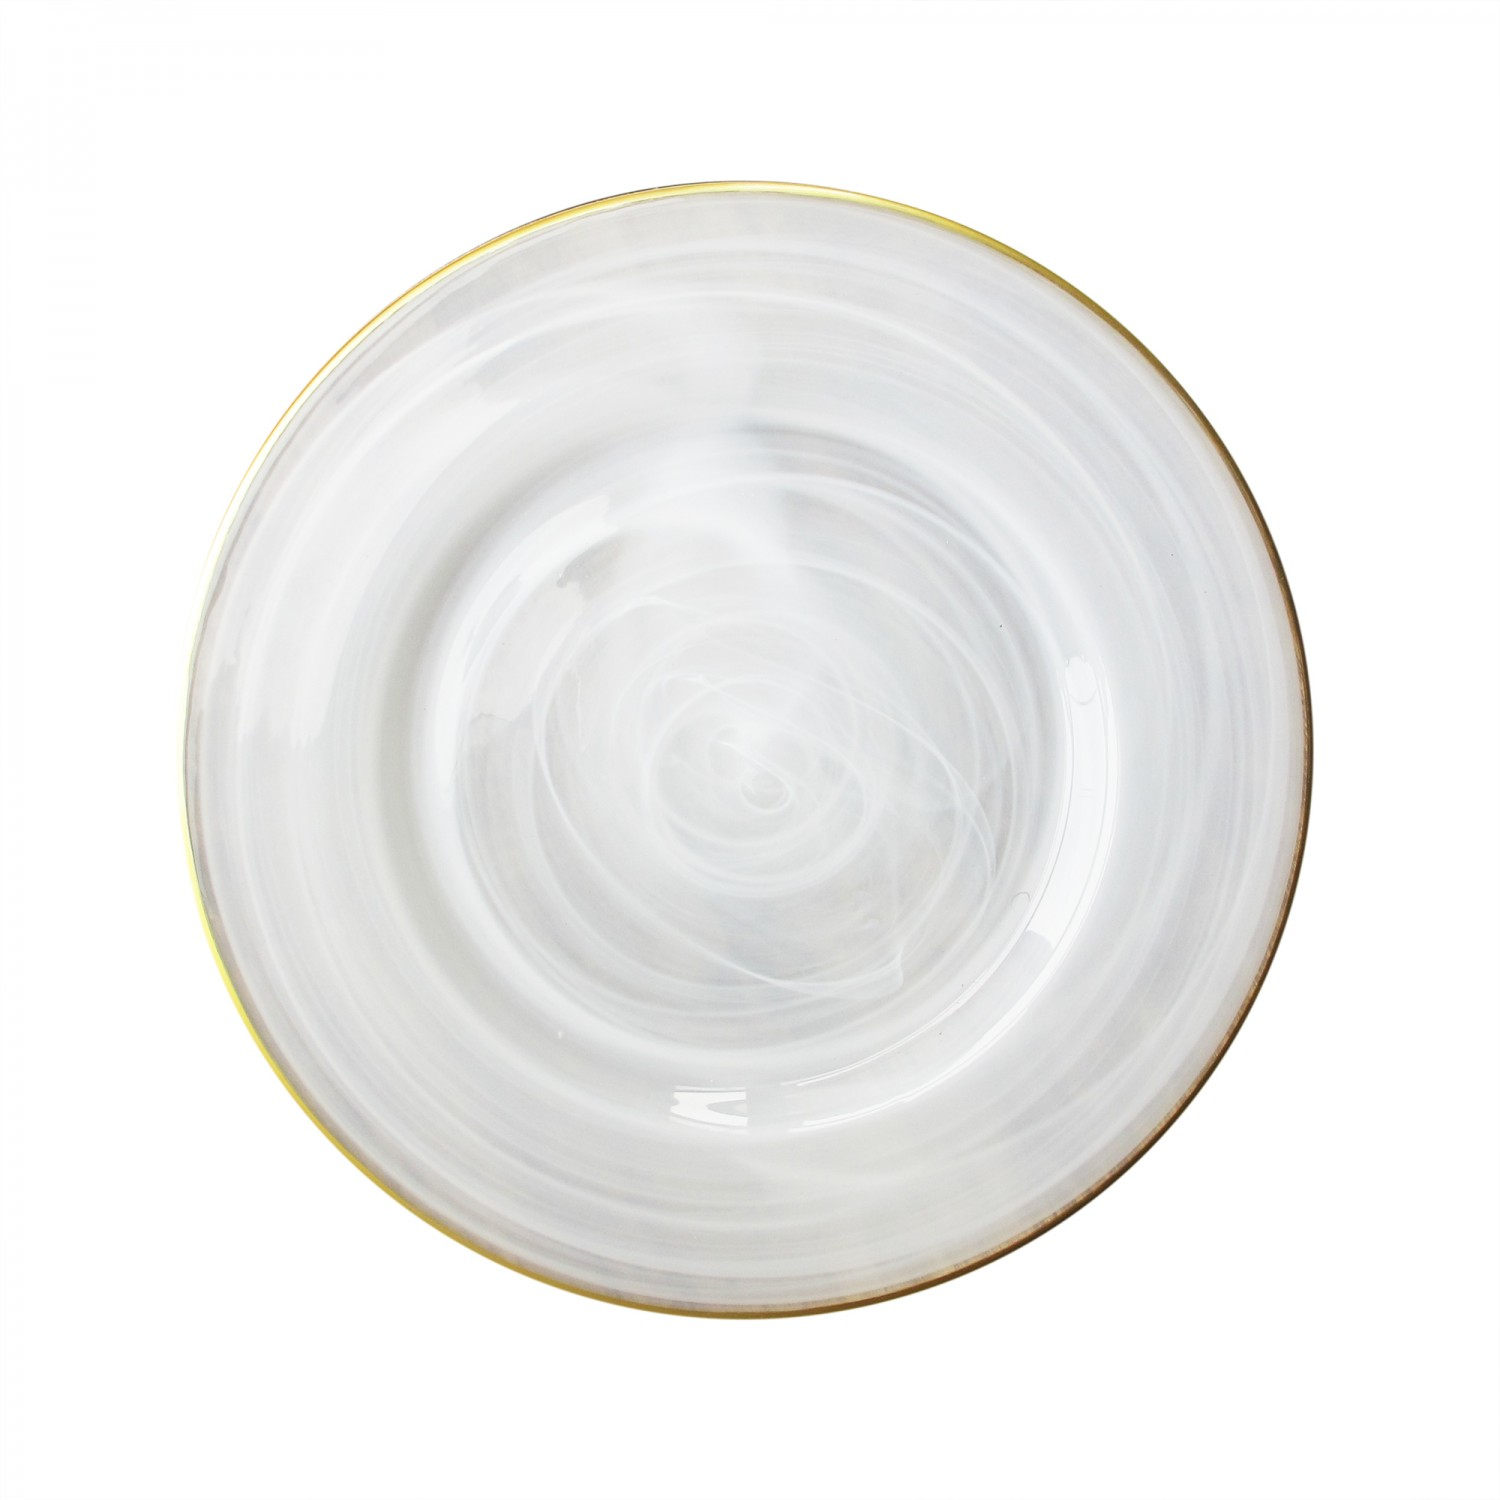 The Jay Companies 1470353 Round Alabaster Gold Rim Glass Charger Plate 13""